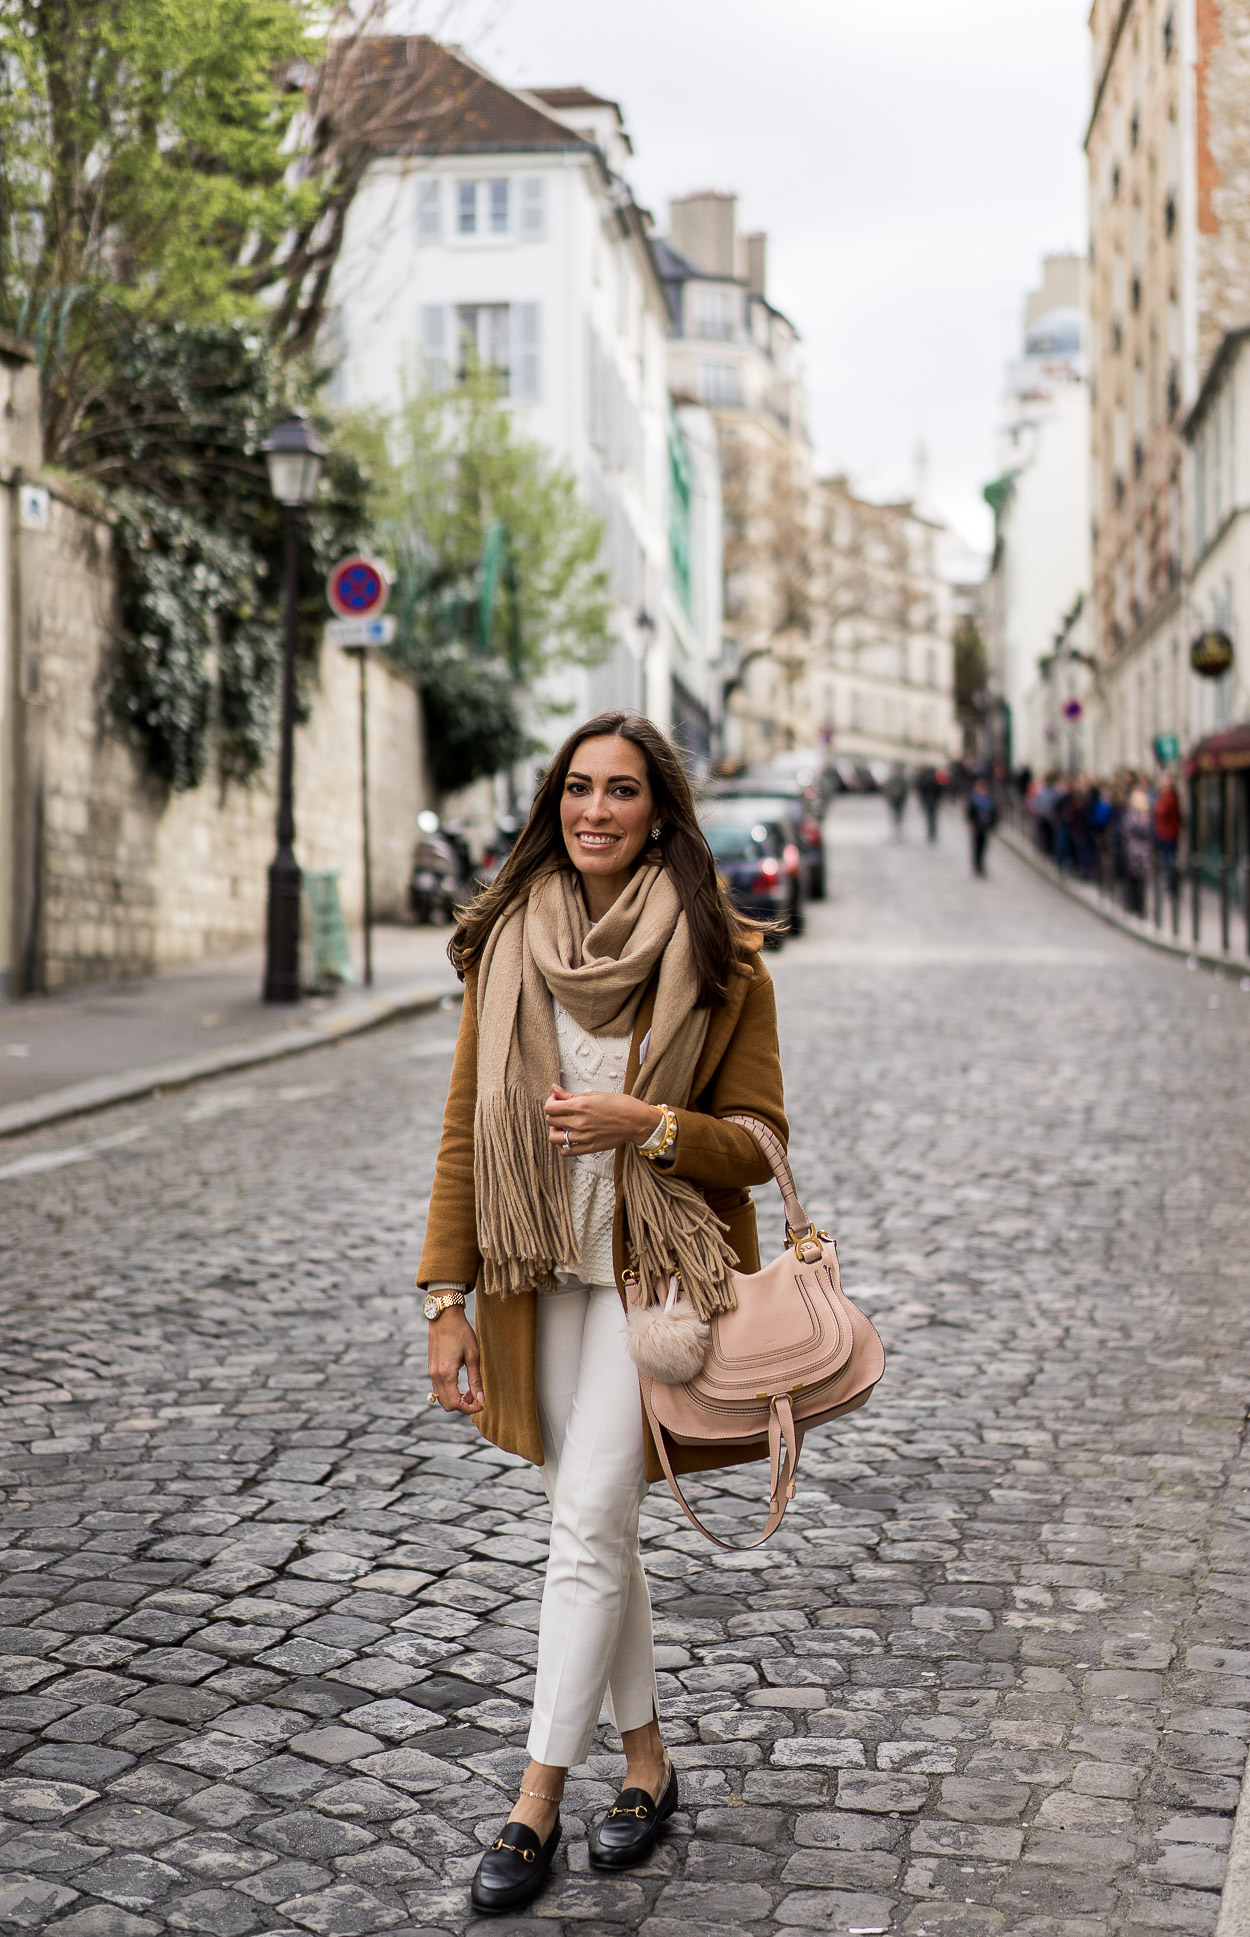 The best things to do in Montmartre include walking the streets and getting lost as said by Amanda of A Glam Lifestyle blog